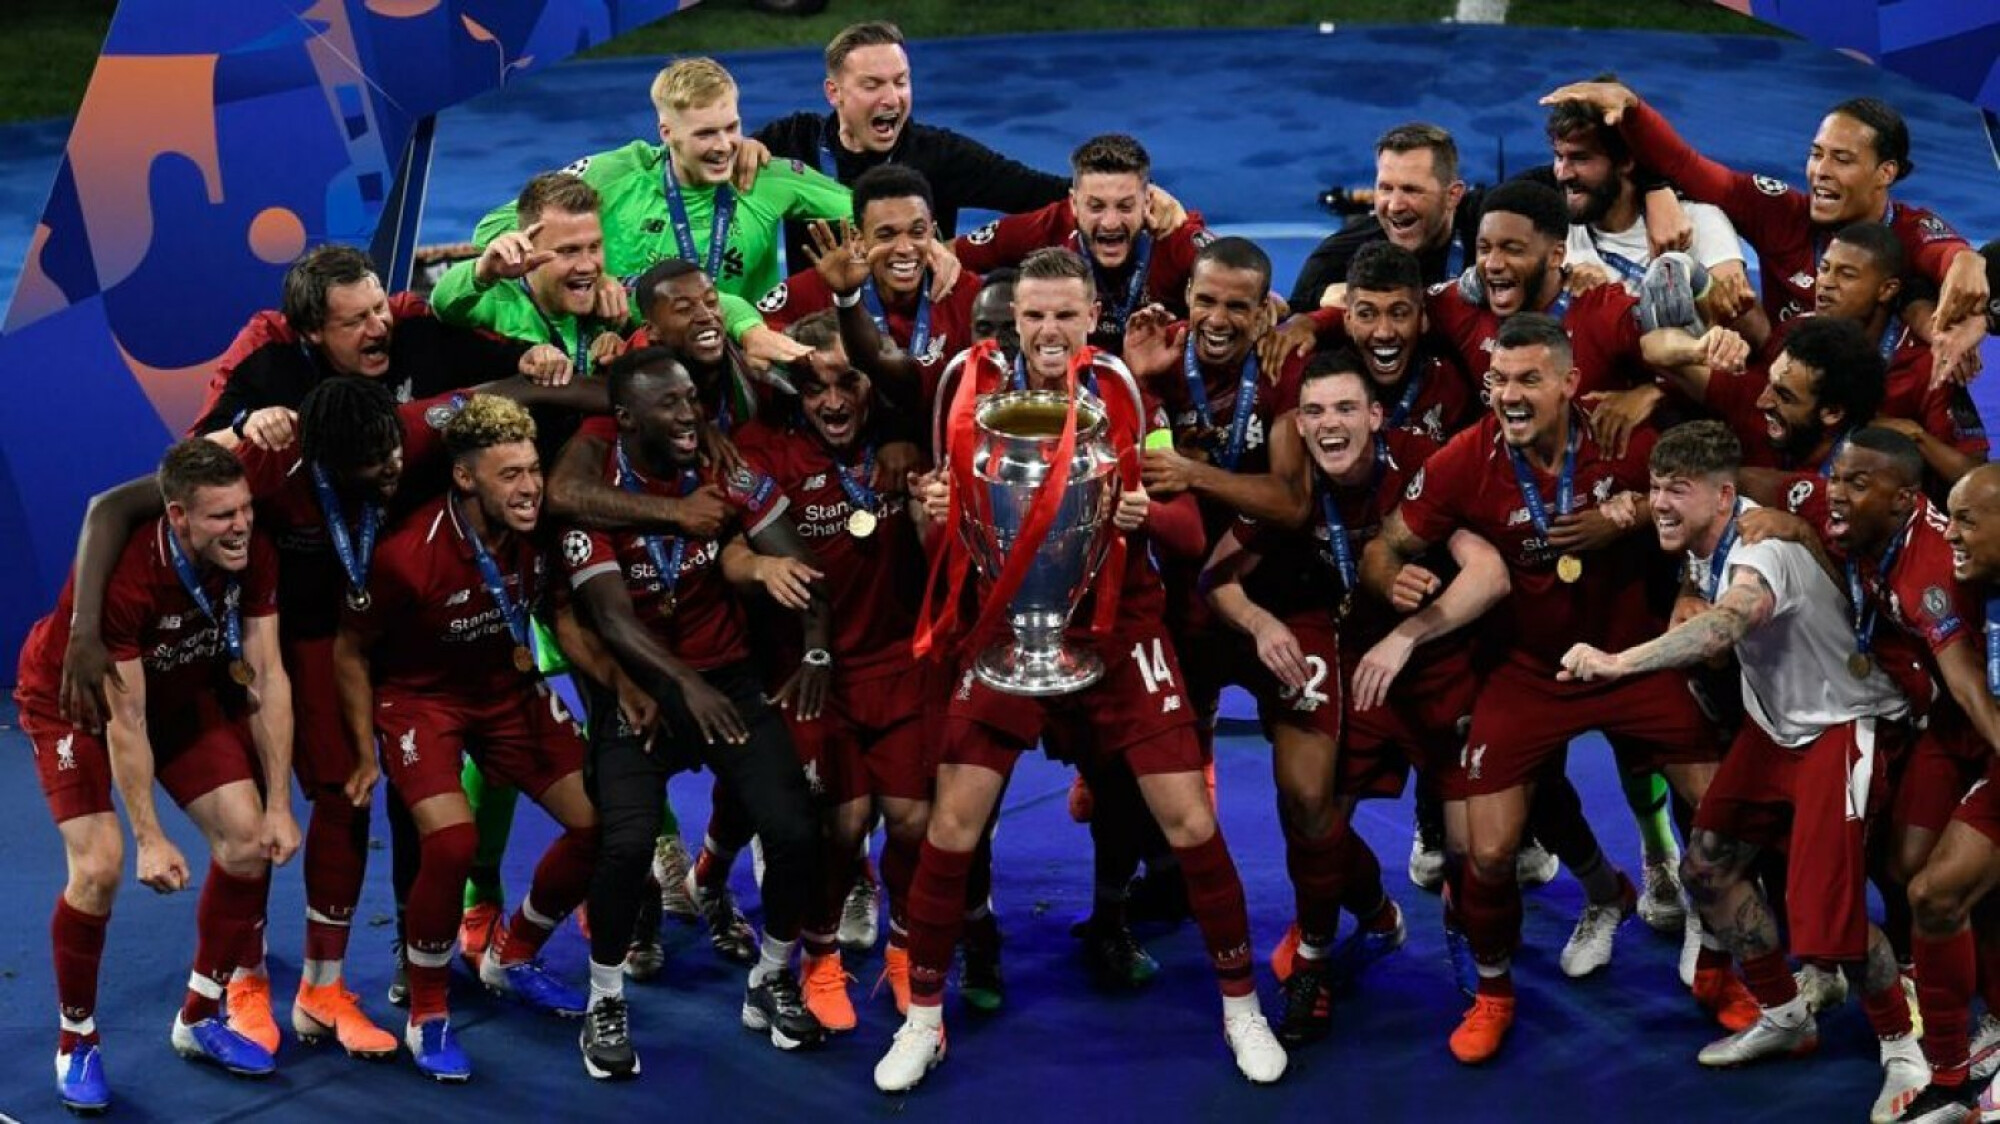 Liverpool are the Champions of Europe!